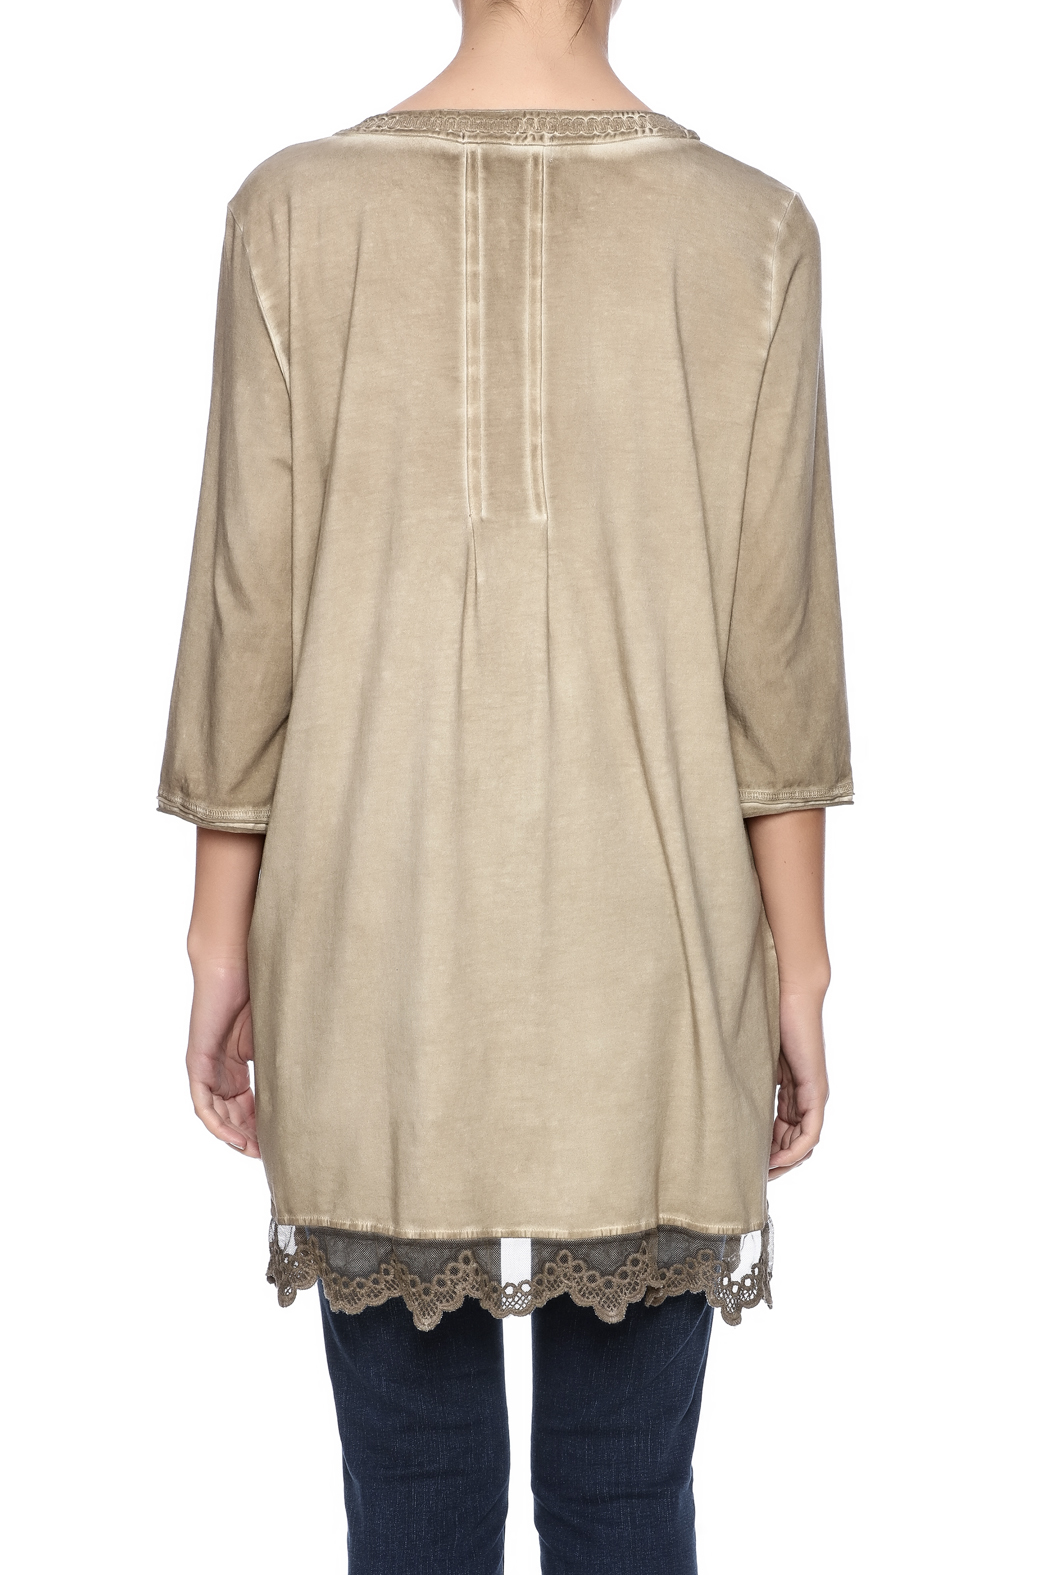 Gretty Zuegar Embroidered Sand Tunic - Back Cropped Image